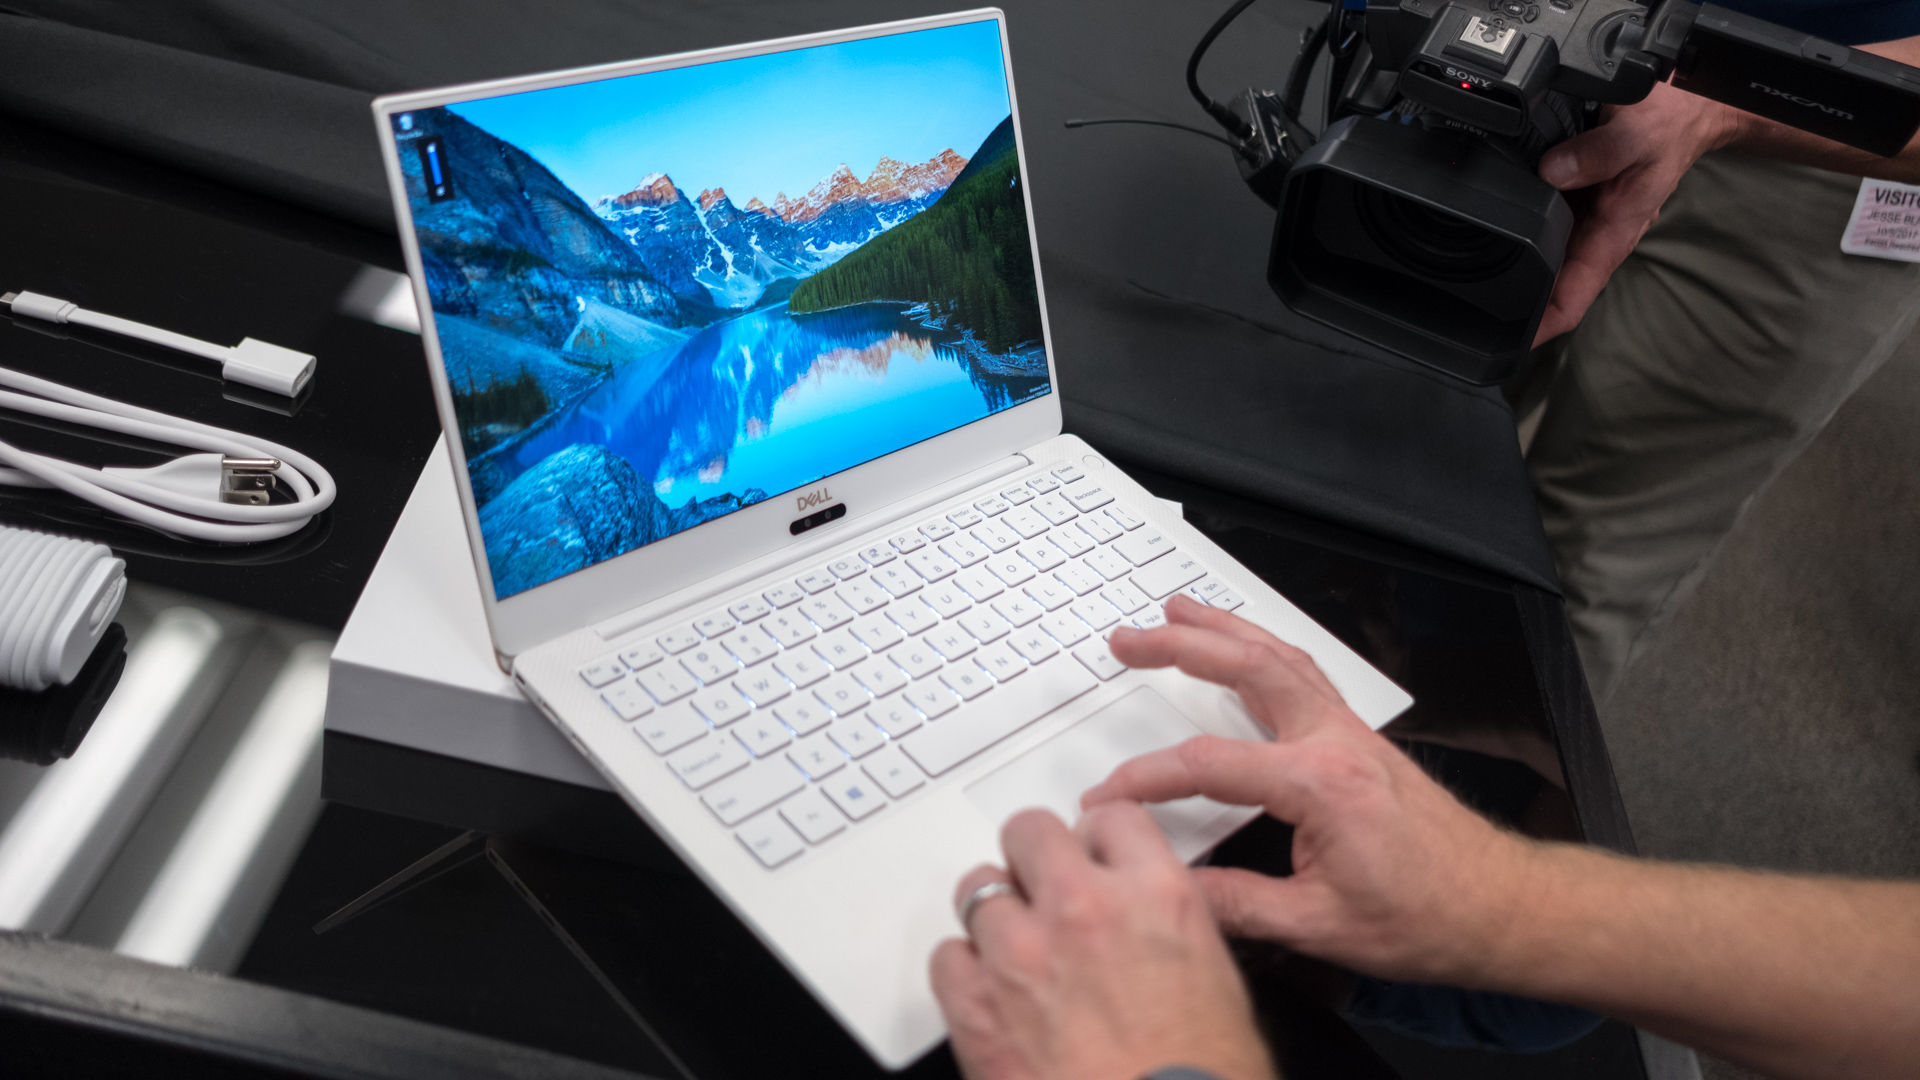 100 common Windows 10 problems and how to solve them | TechRadar